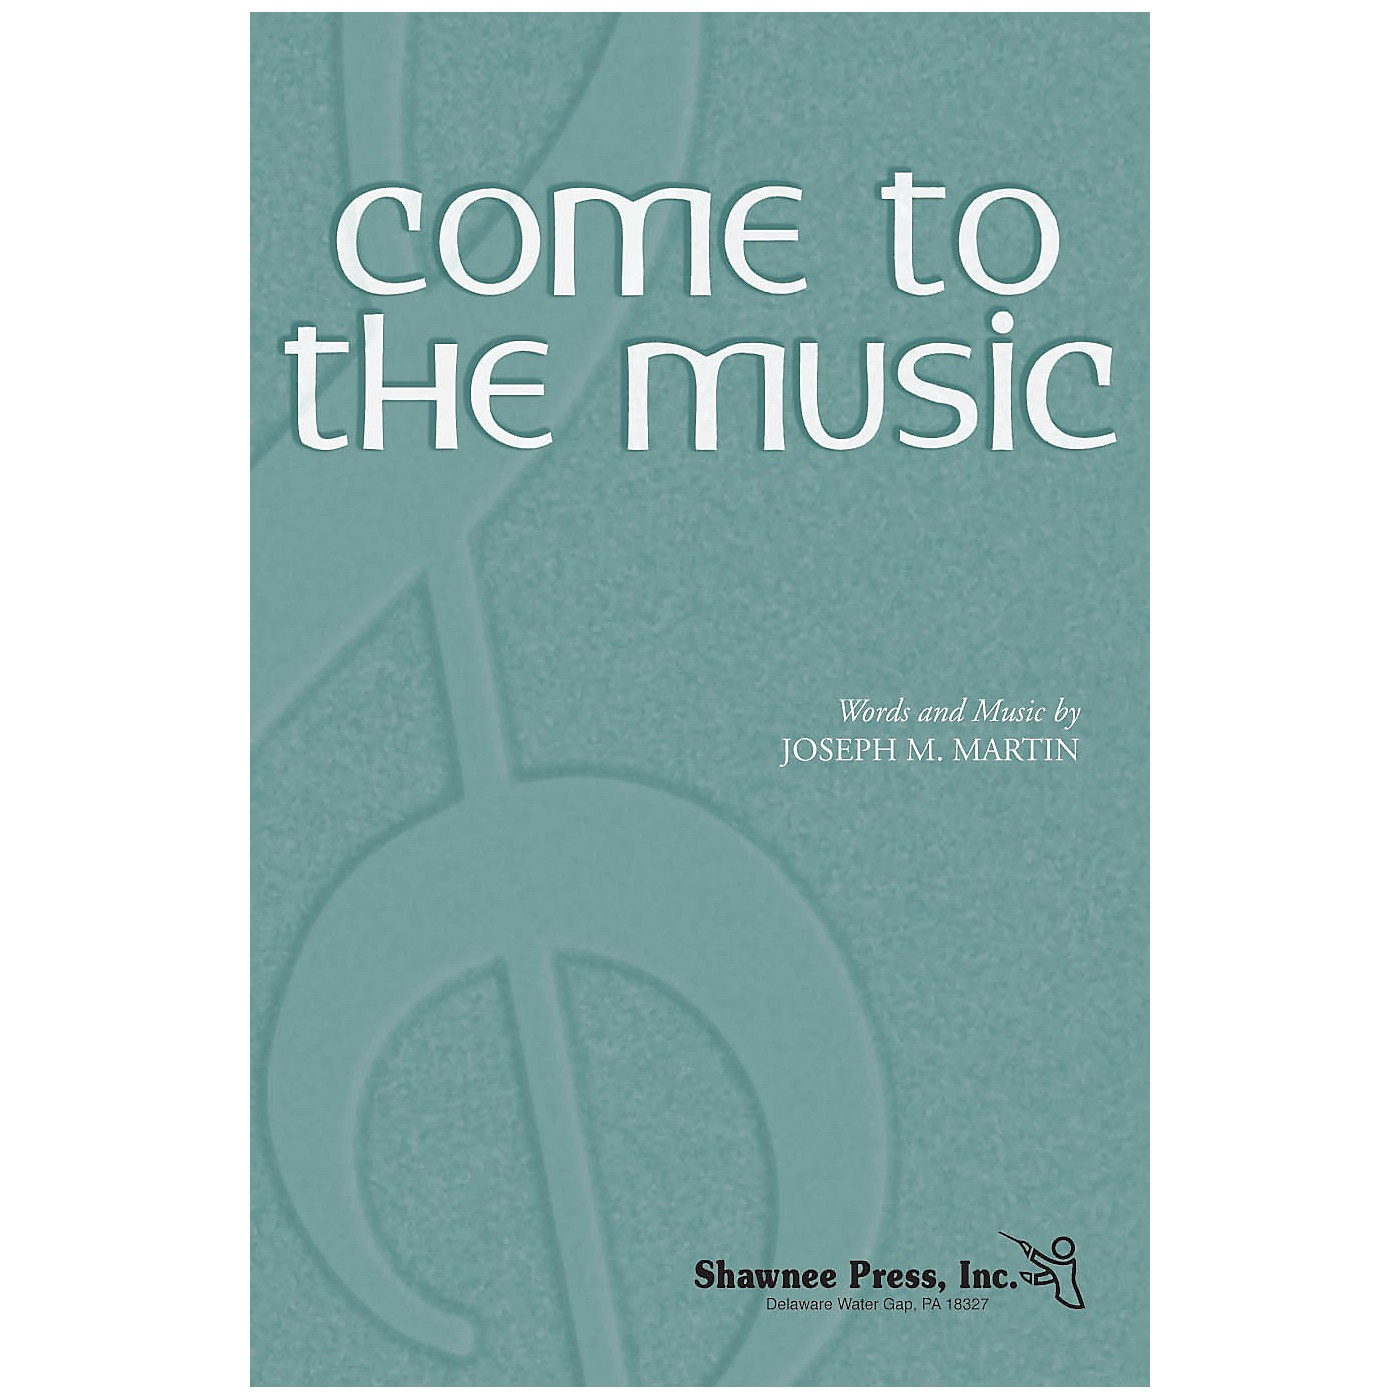 Shawnee Press Come to the Music ORCHESTRATION ON CD-ROM Composed by Joseph M. Martin thumbnail